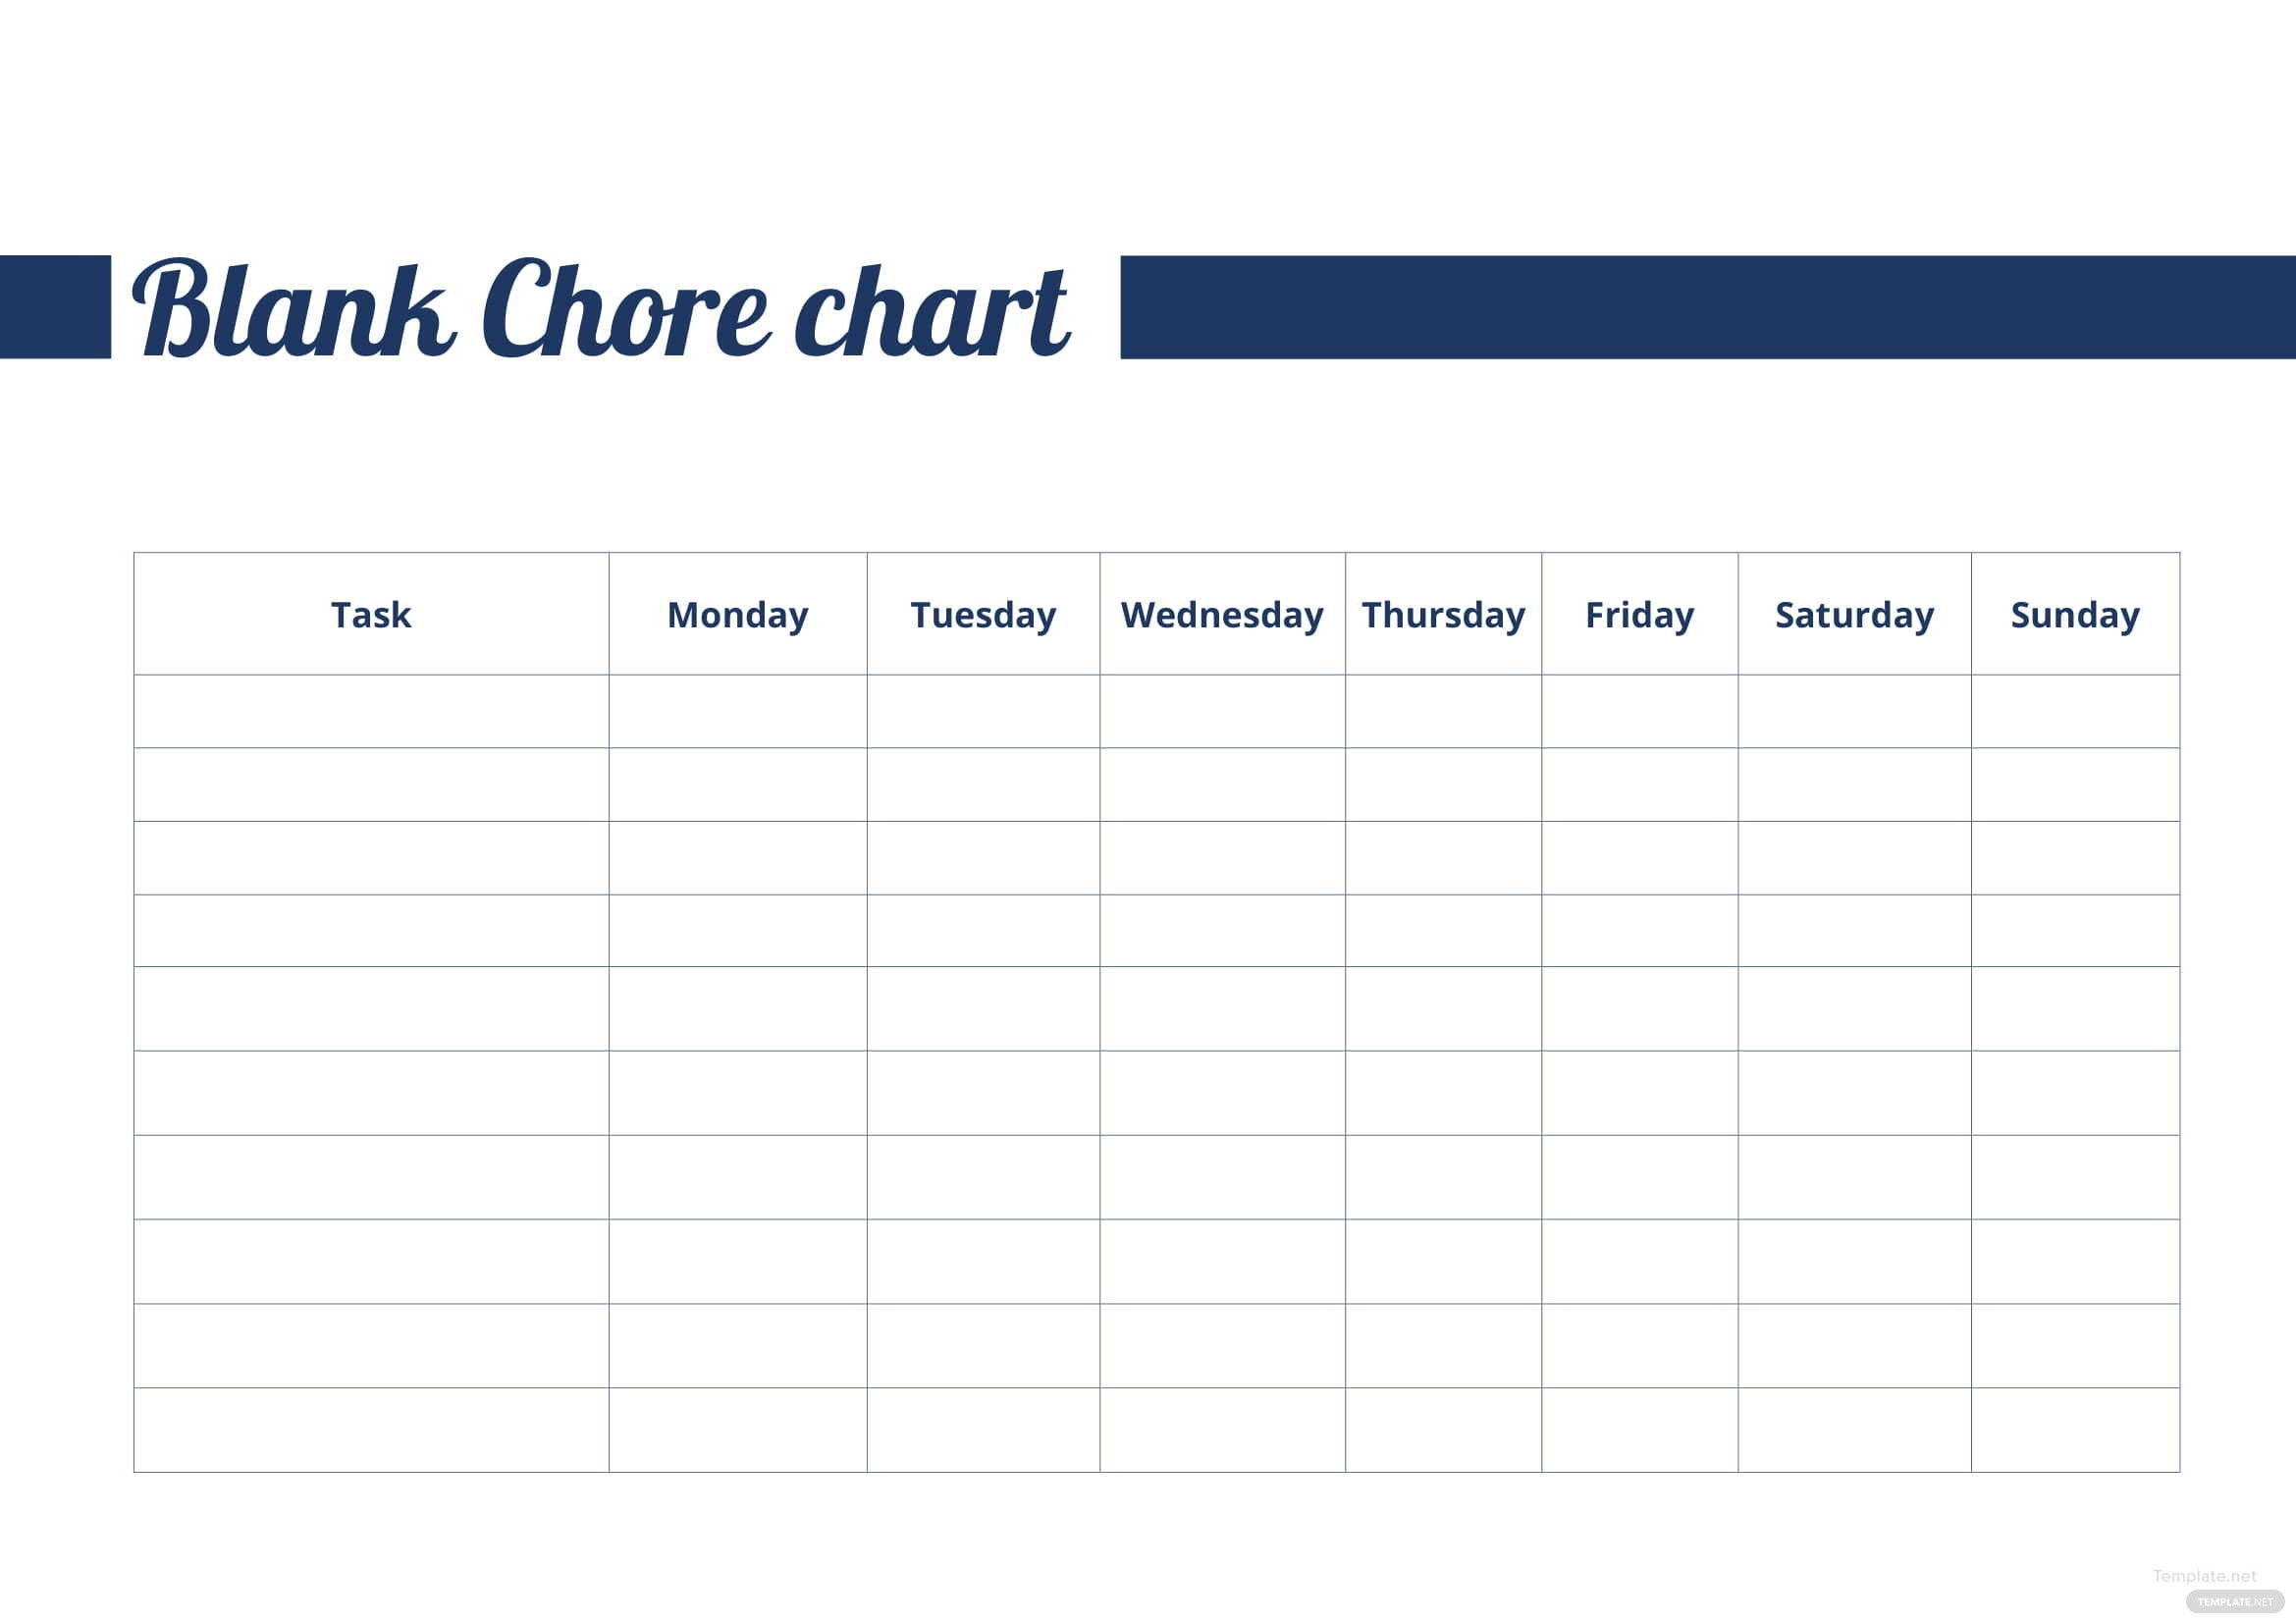 blank chore chart template in microsoft word